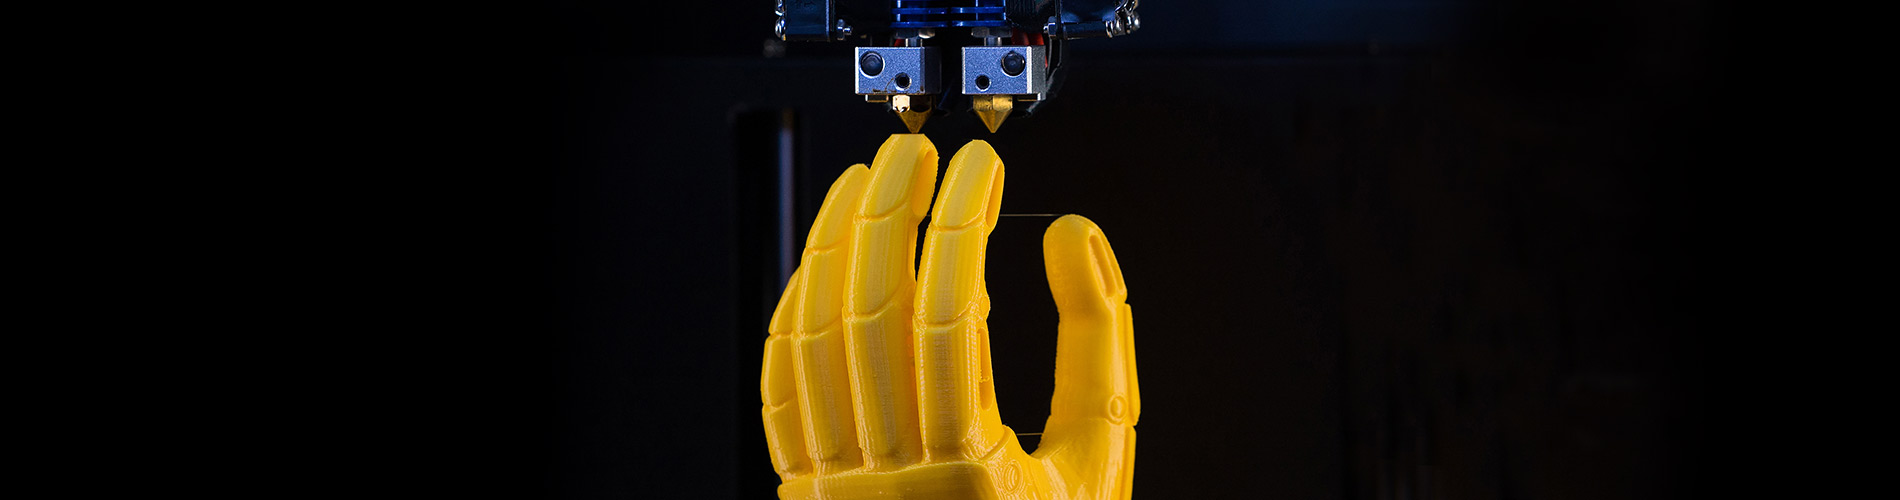 Photo of robotic hand